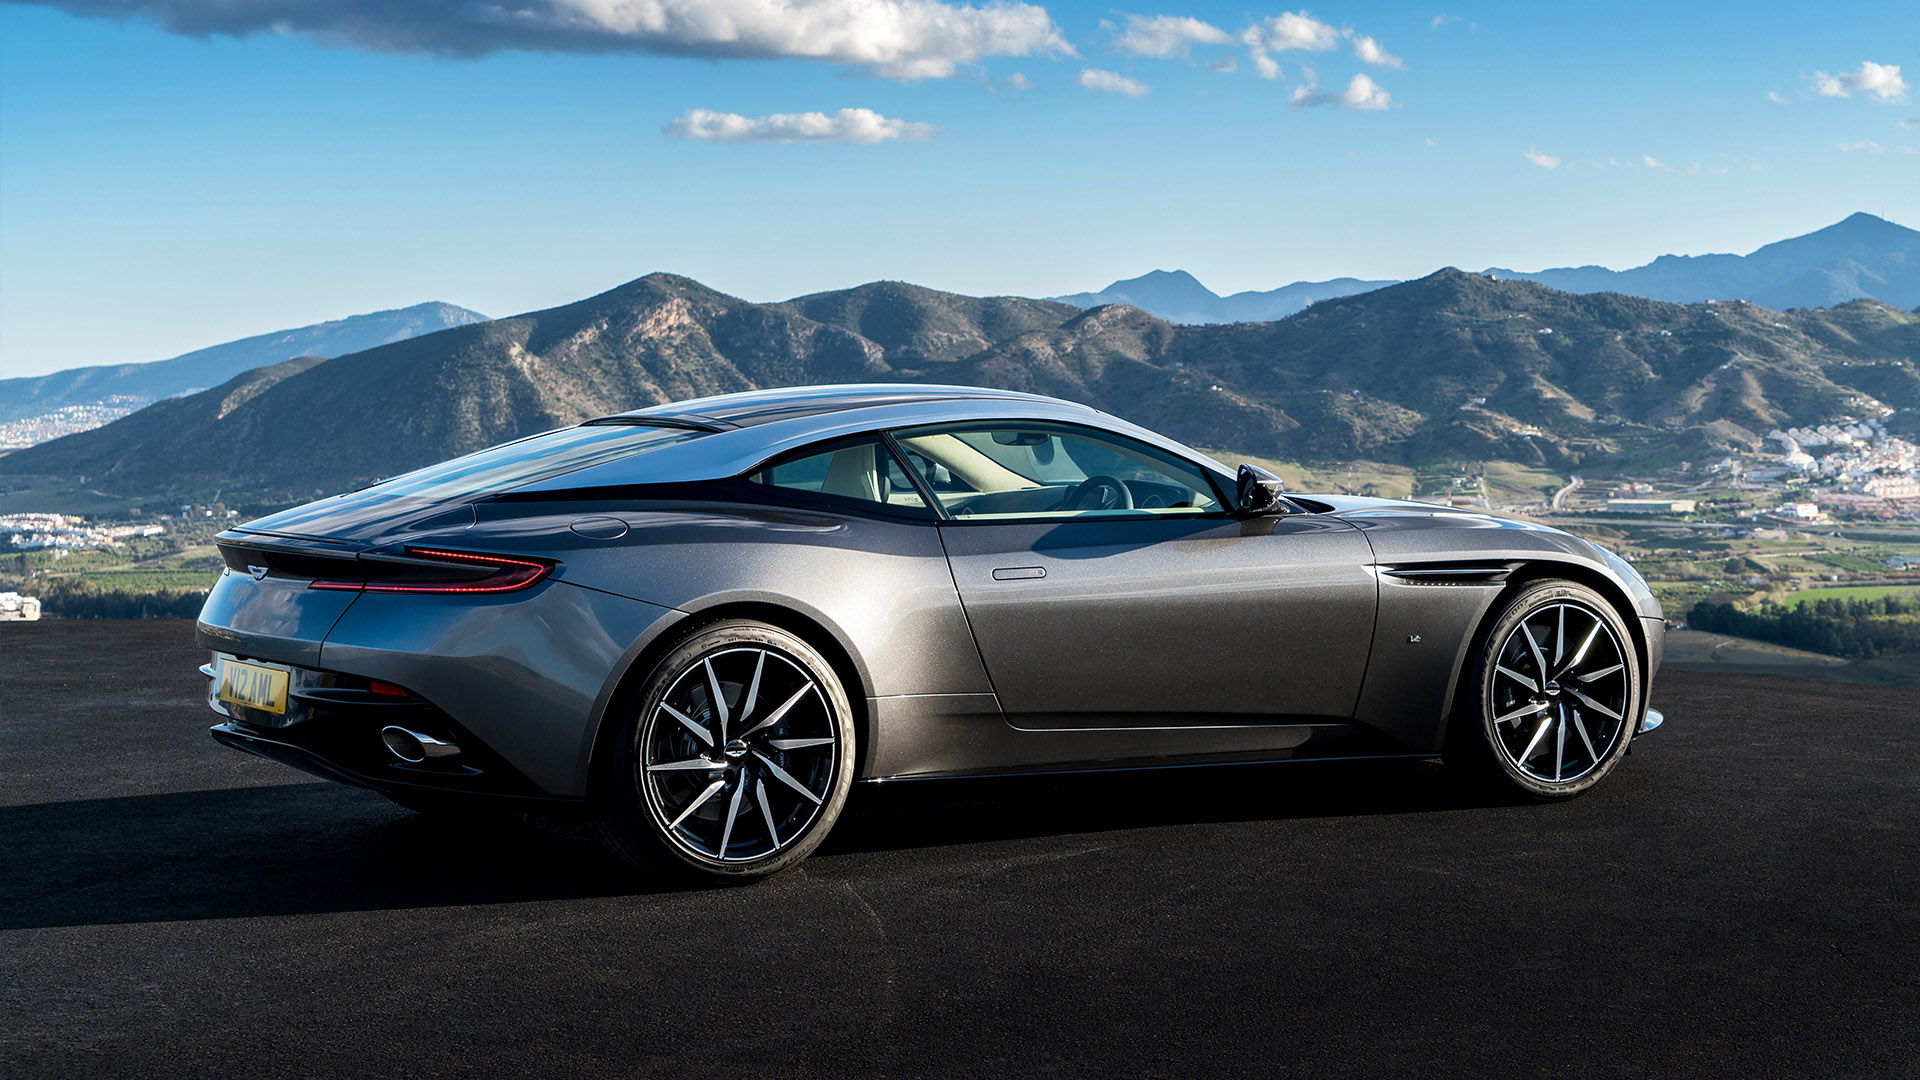 Get Aston Martin Key Replacement In Atlanta By V Locksmith - Aston martin atlanta